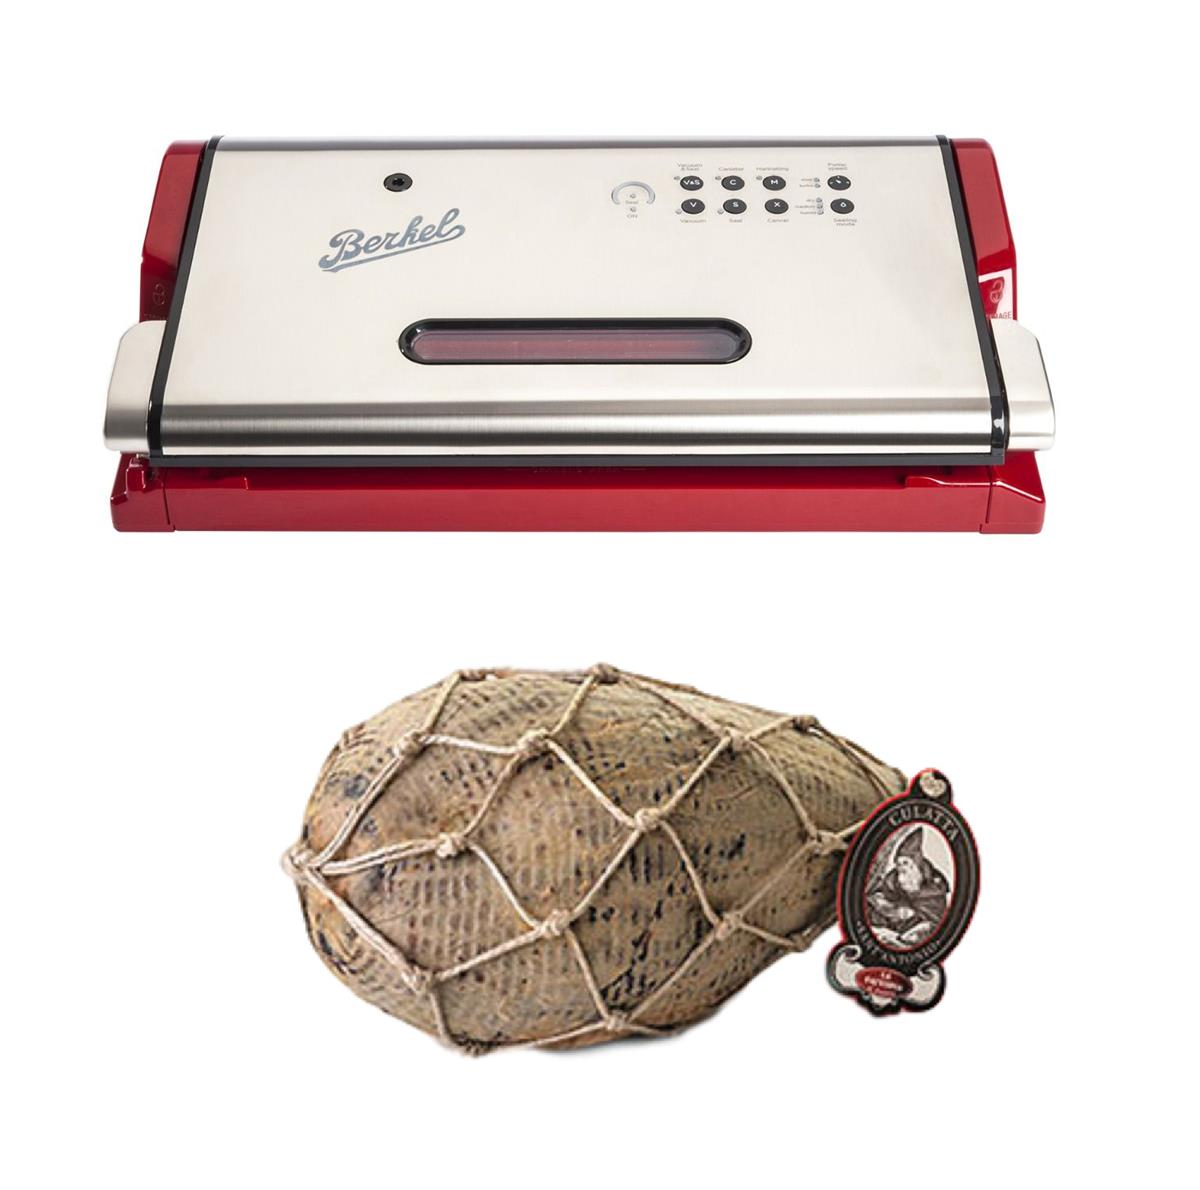 Vacuum machine + Full Coppa with leather